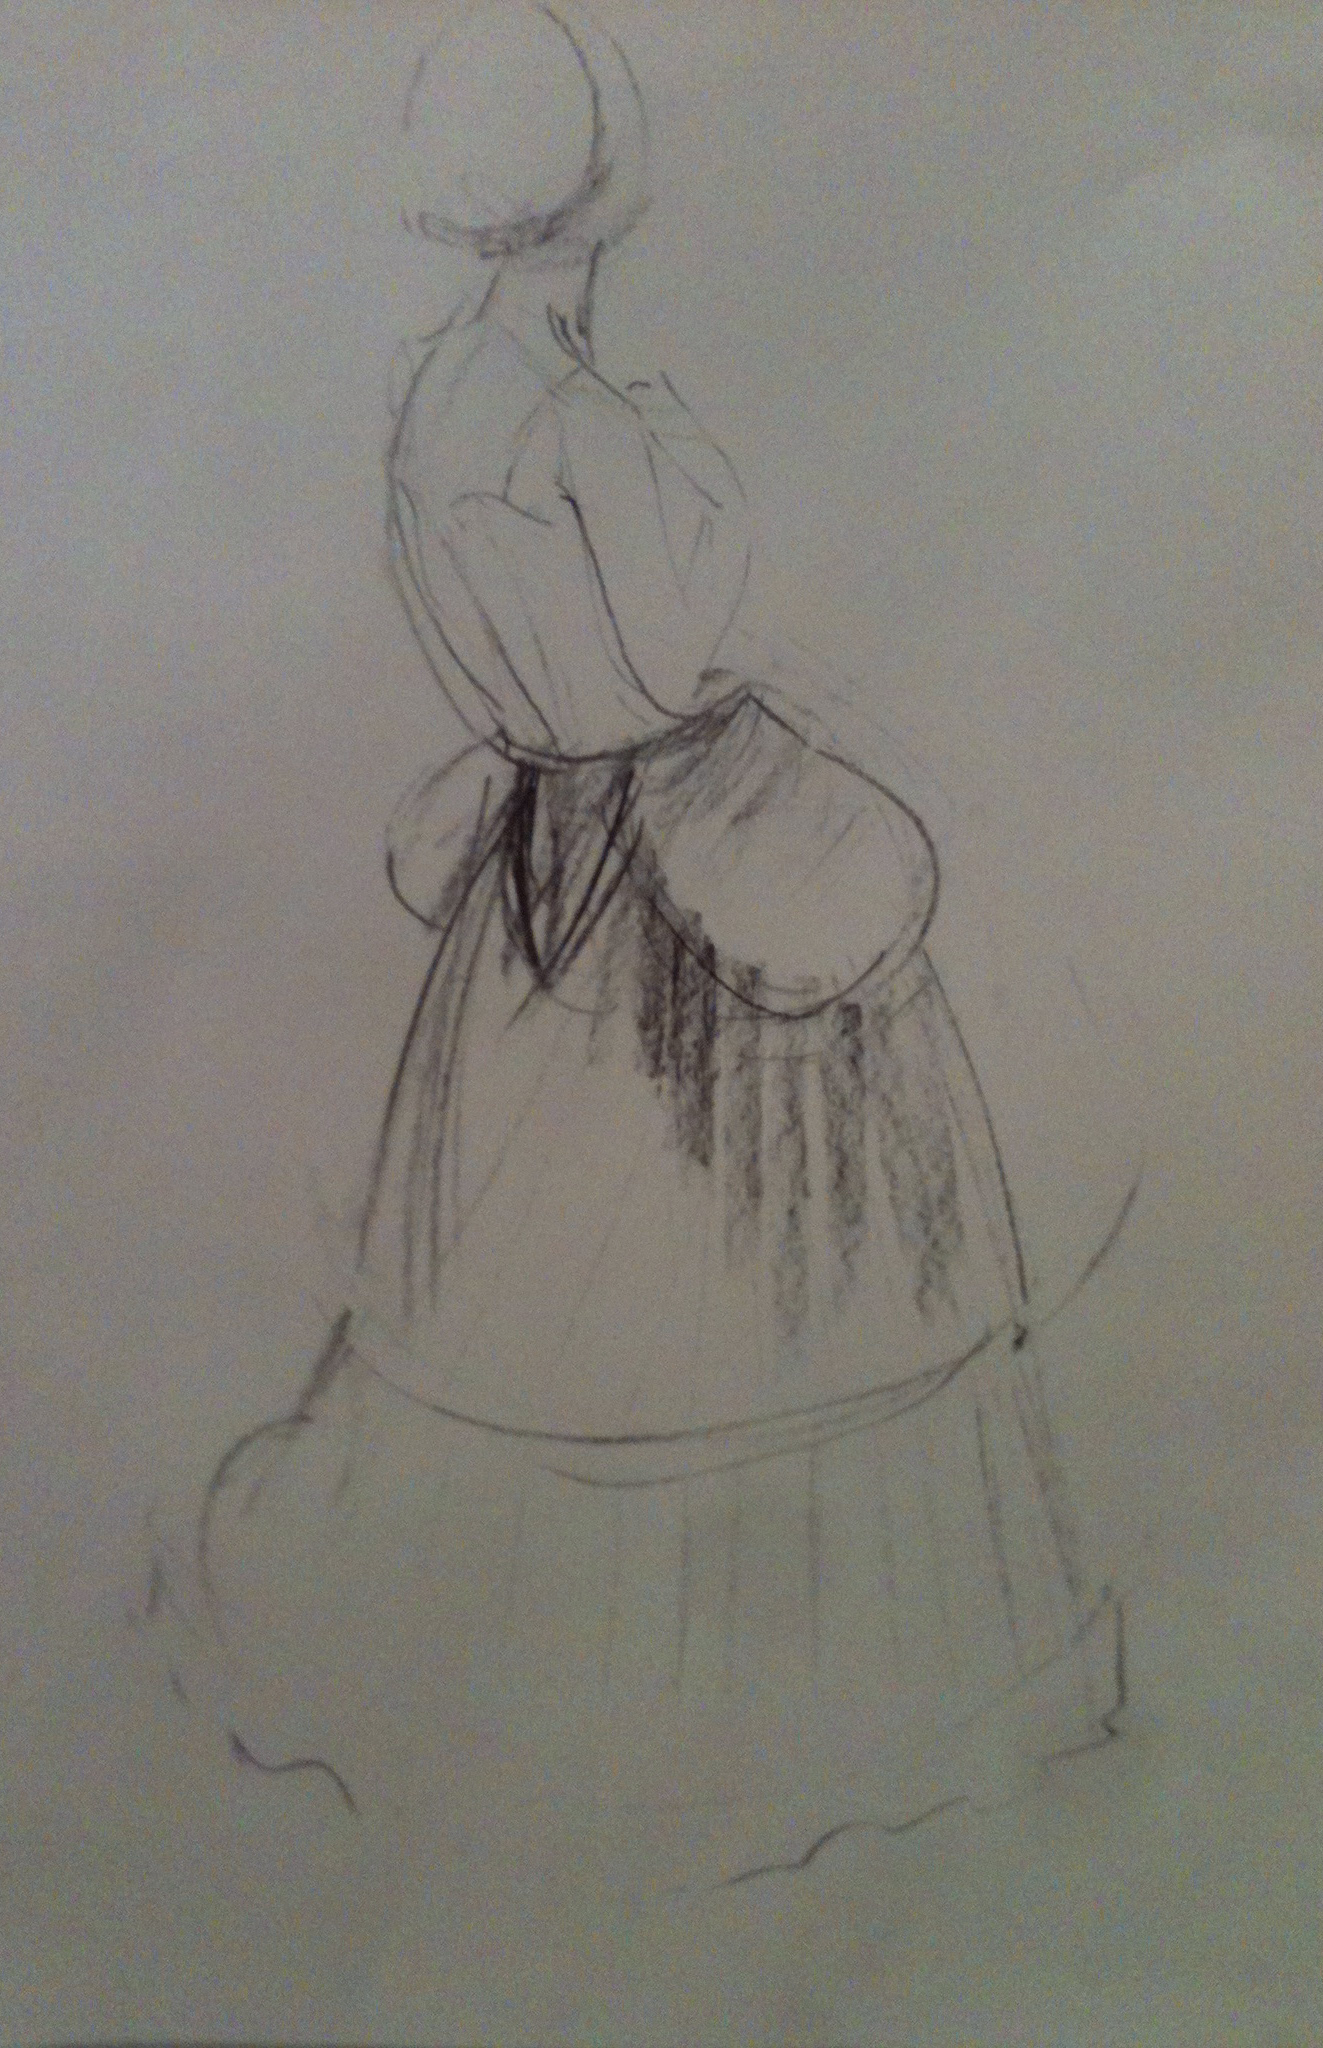 Girl in a petticoat